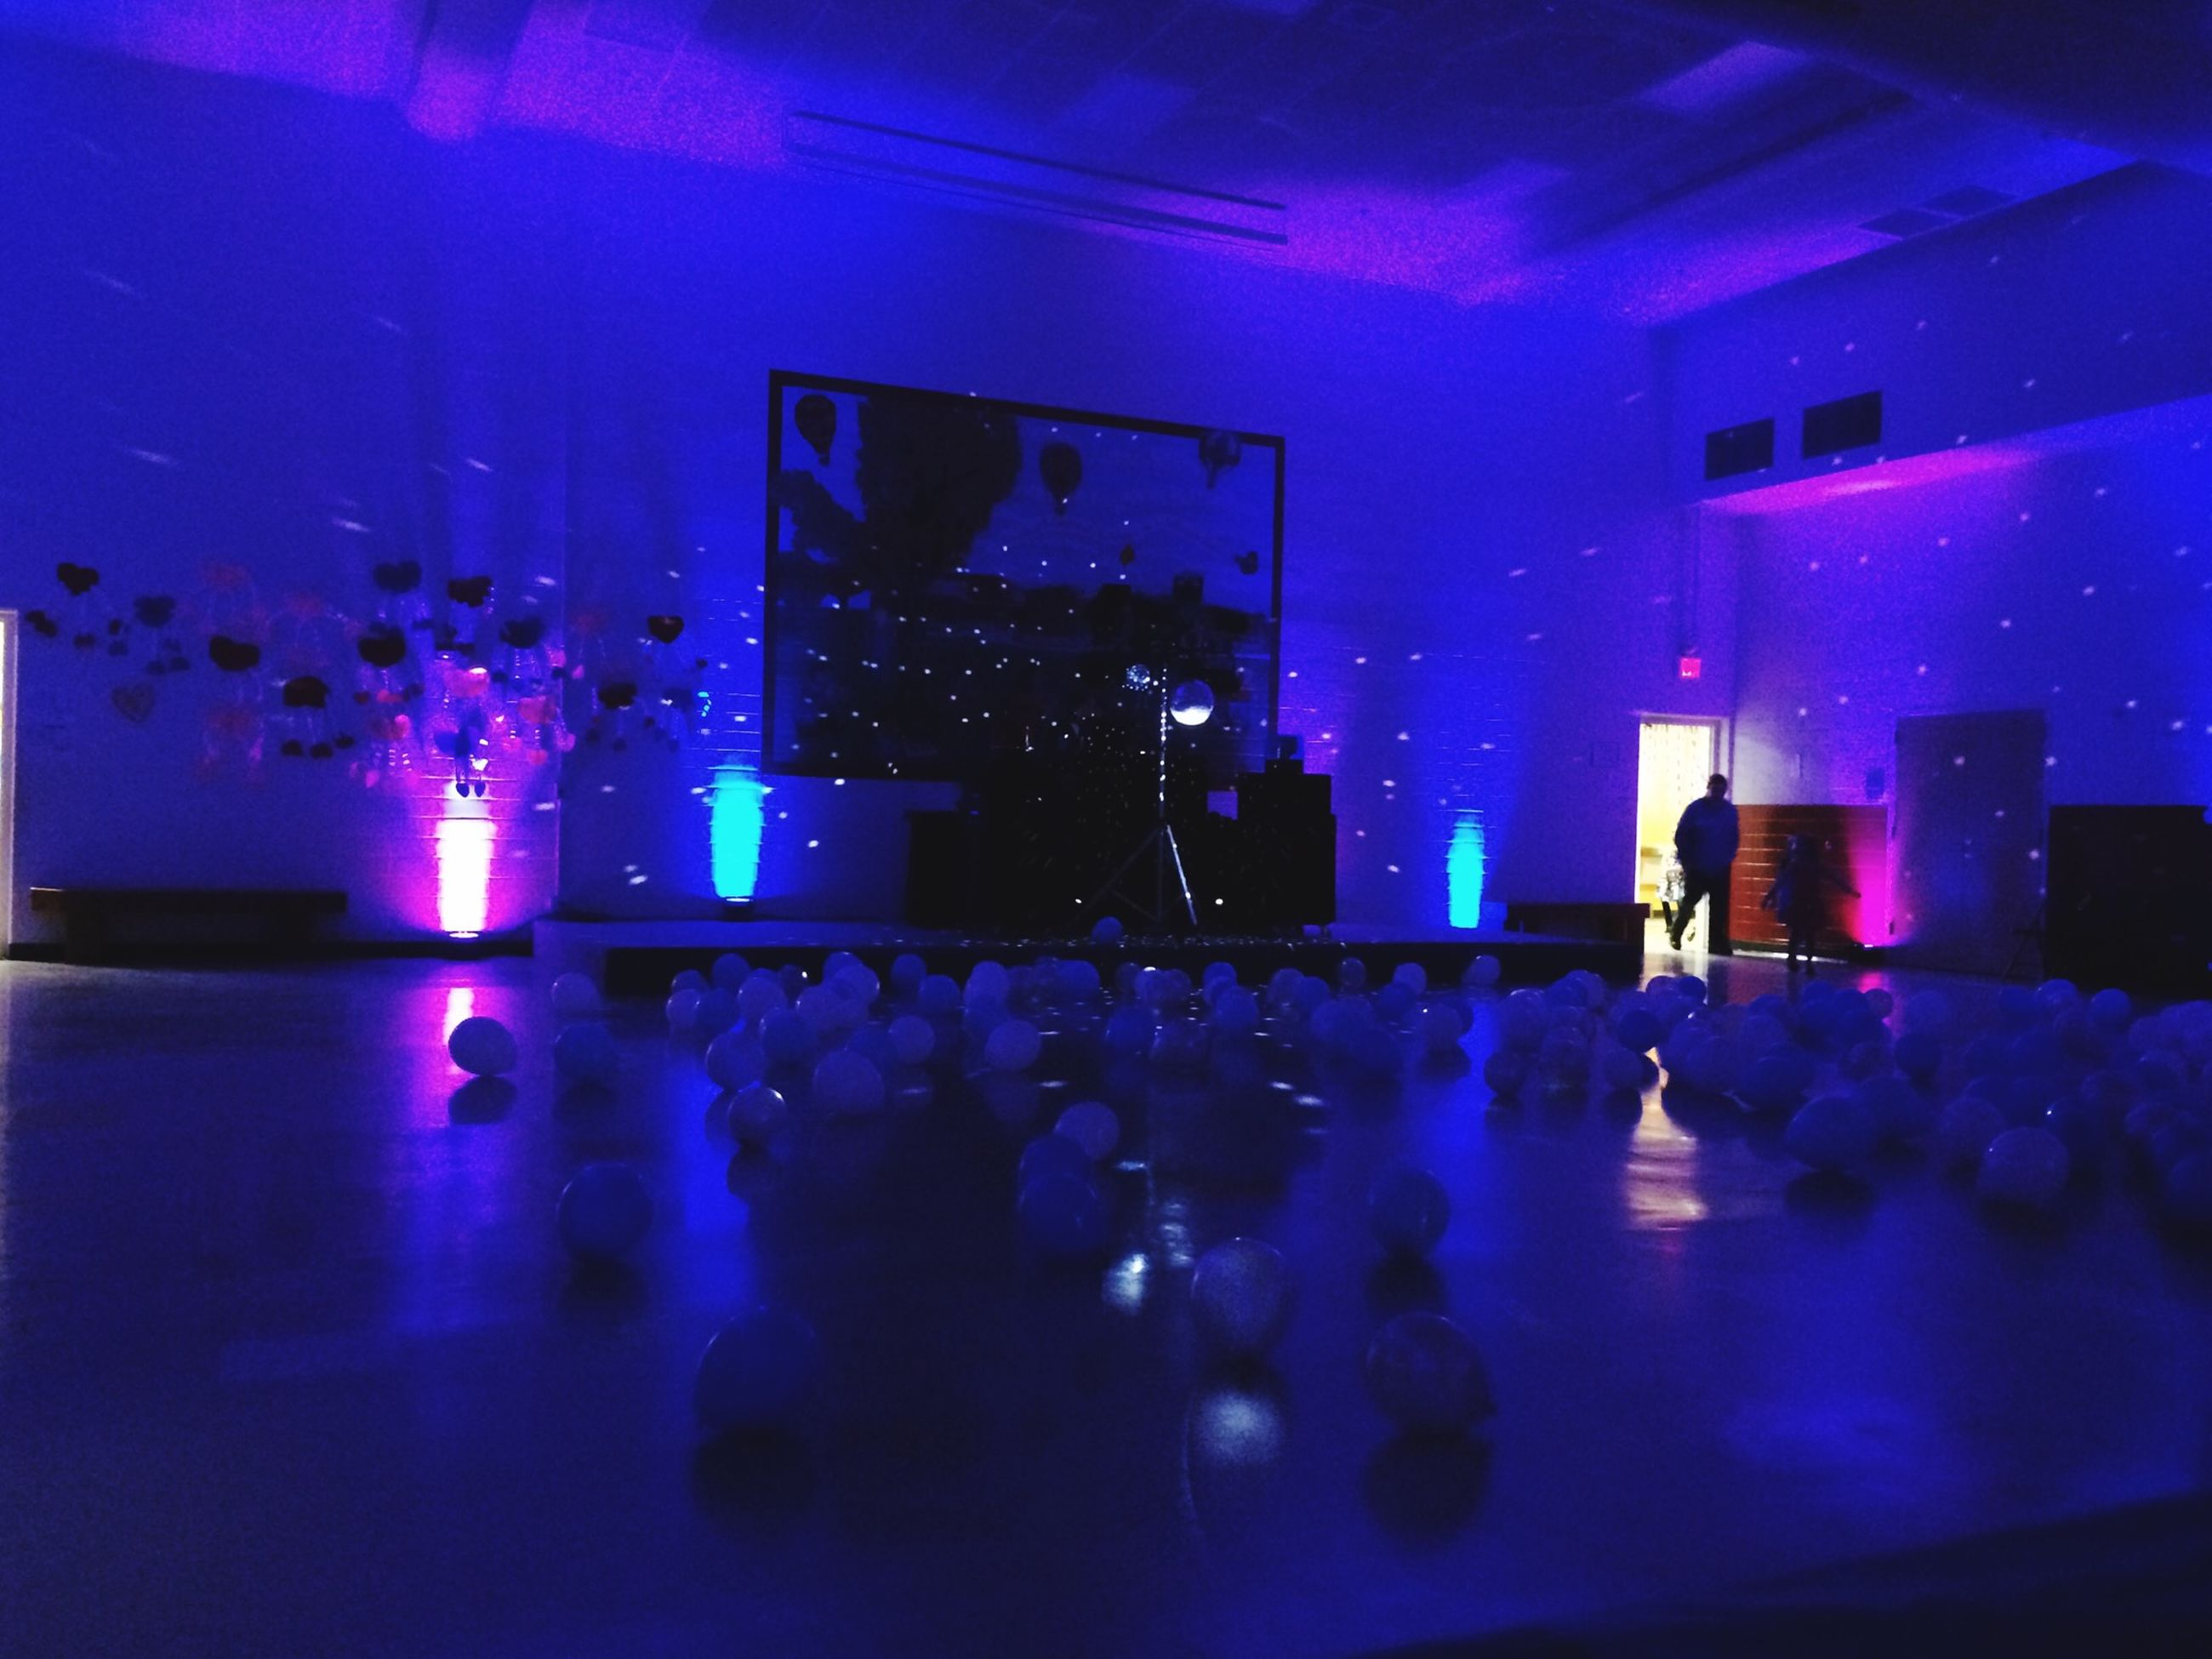 indoors, illuminated, large group of people, men, lifestyles, crowd, night, nightlife, person, leisure activity, arts culture and entertainment, music, enjoyment, concert, blue, stage - performance space, light - natural phenomenon, lighting equipment